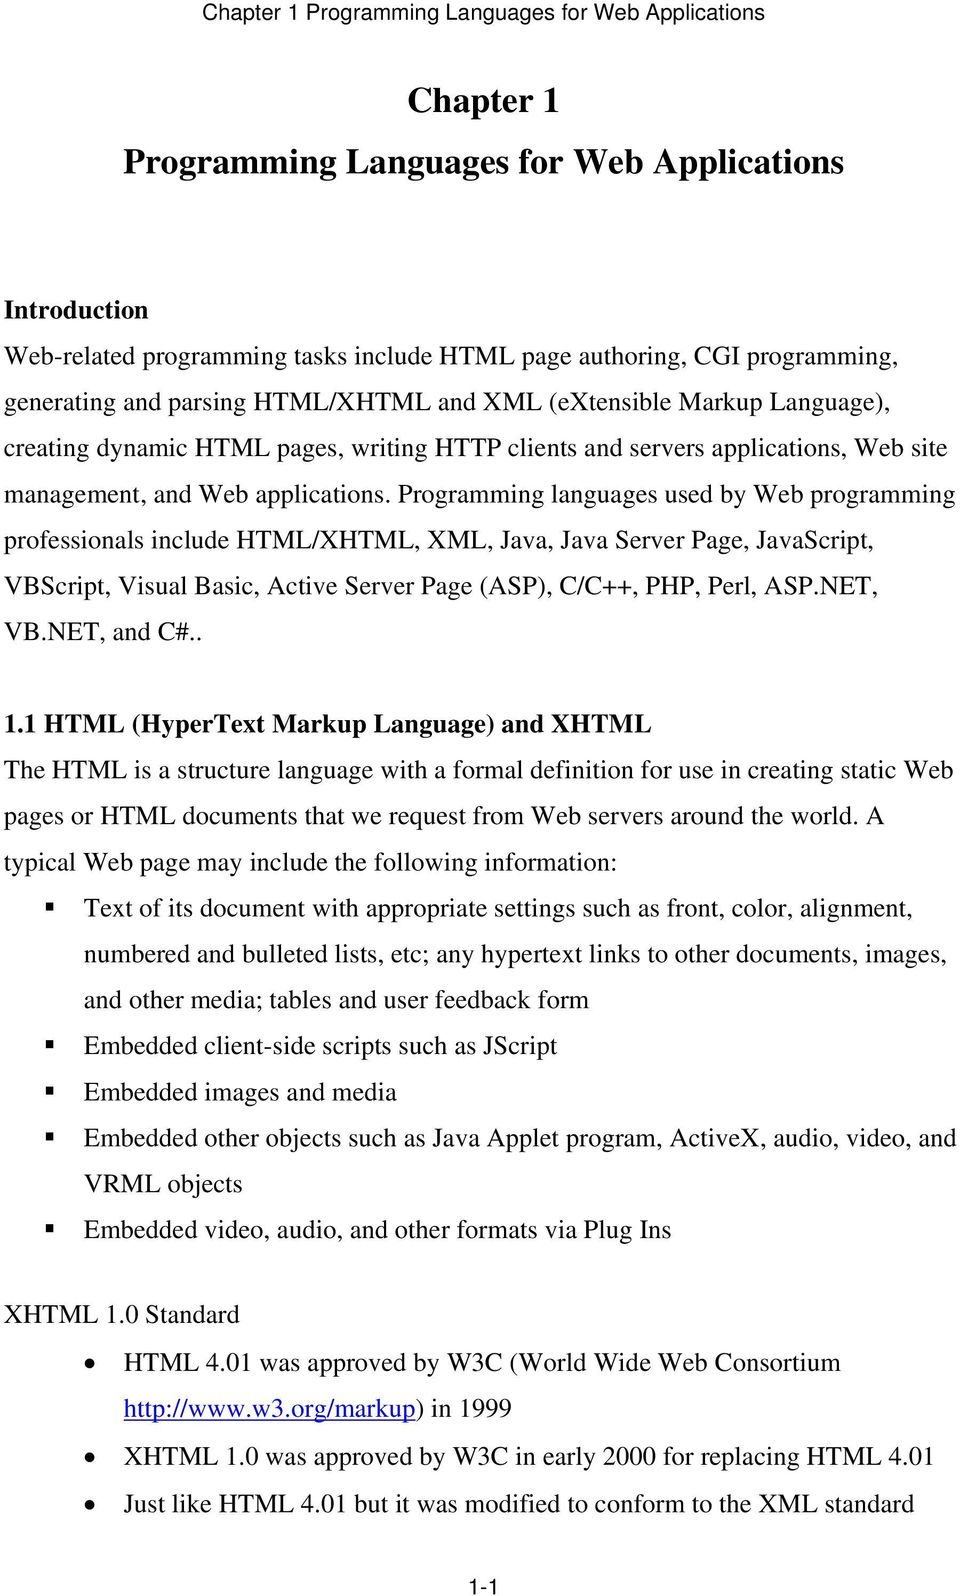 Programming languages used by Web programming professionals include HTML/XHTML, XML, Java, Java Server Page, JavaScript, VBScript, Visual Basic, Active Server Page (ASP), C/C++, PHP, Perl, ASP.